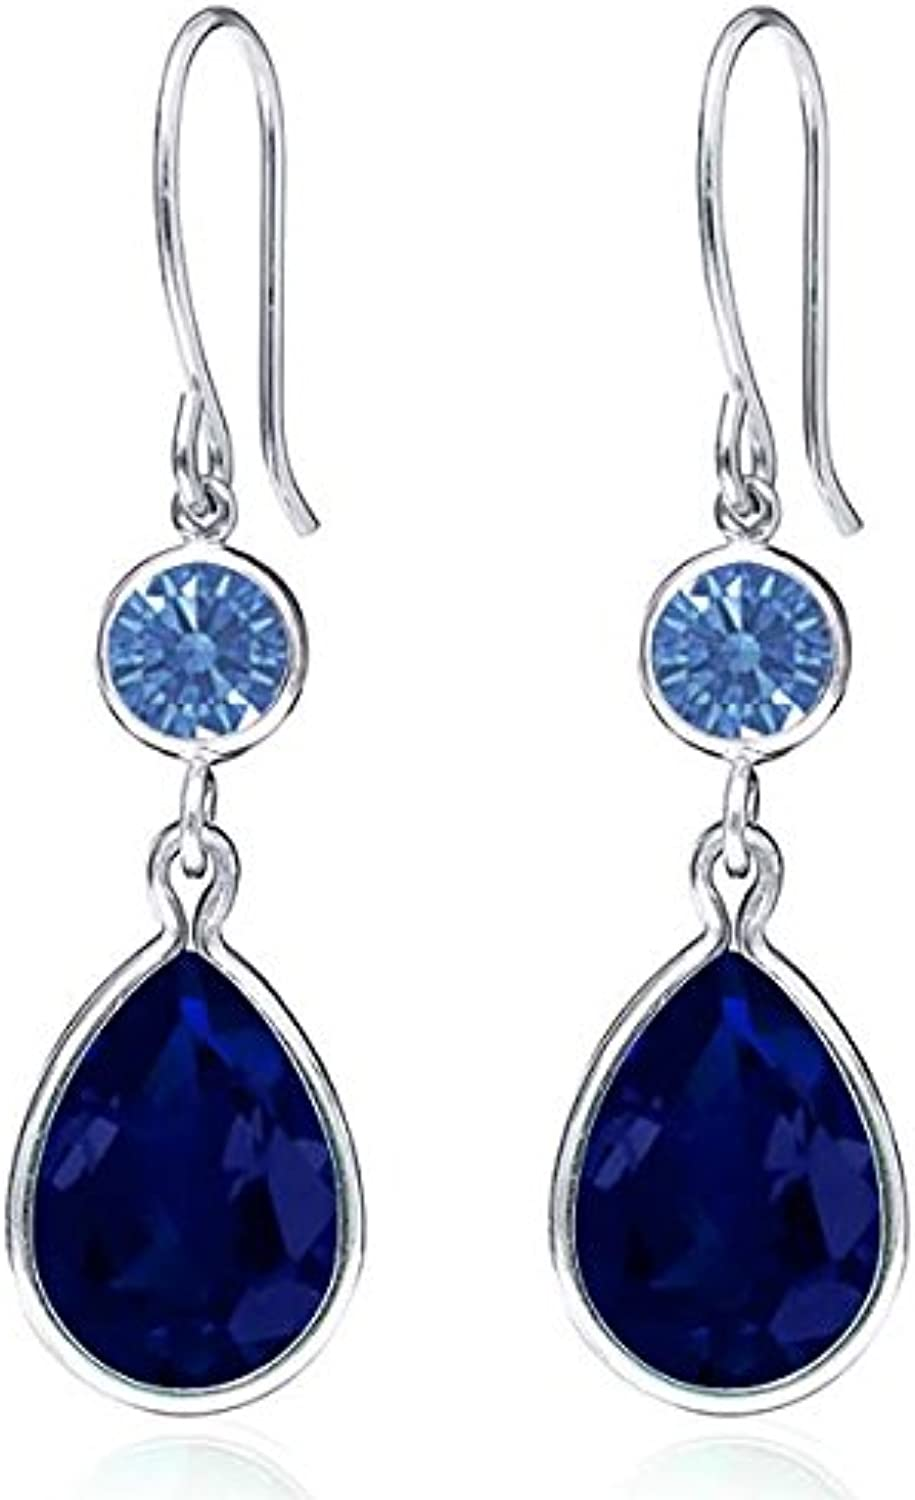 12.38 Ct bluee 925 Sterling Silver Earrings Made With Swarovski Zirconia